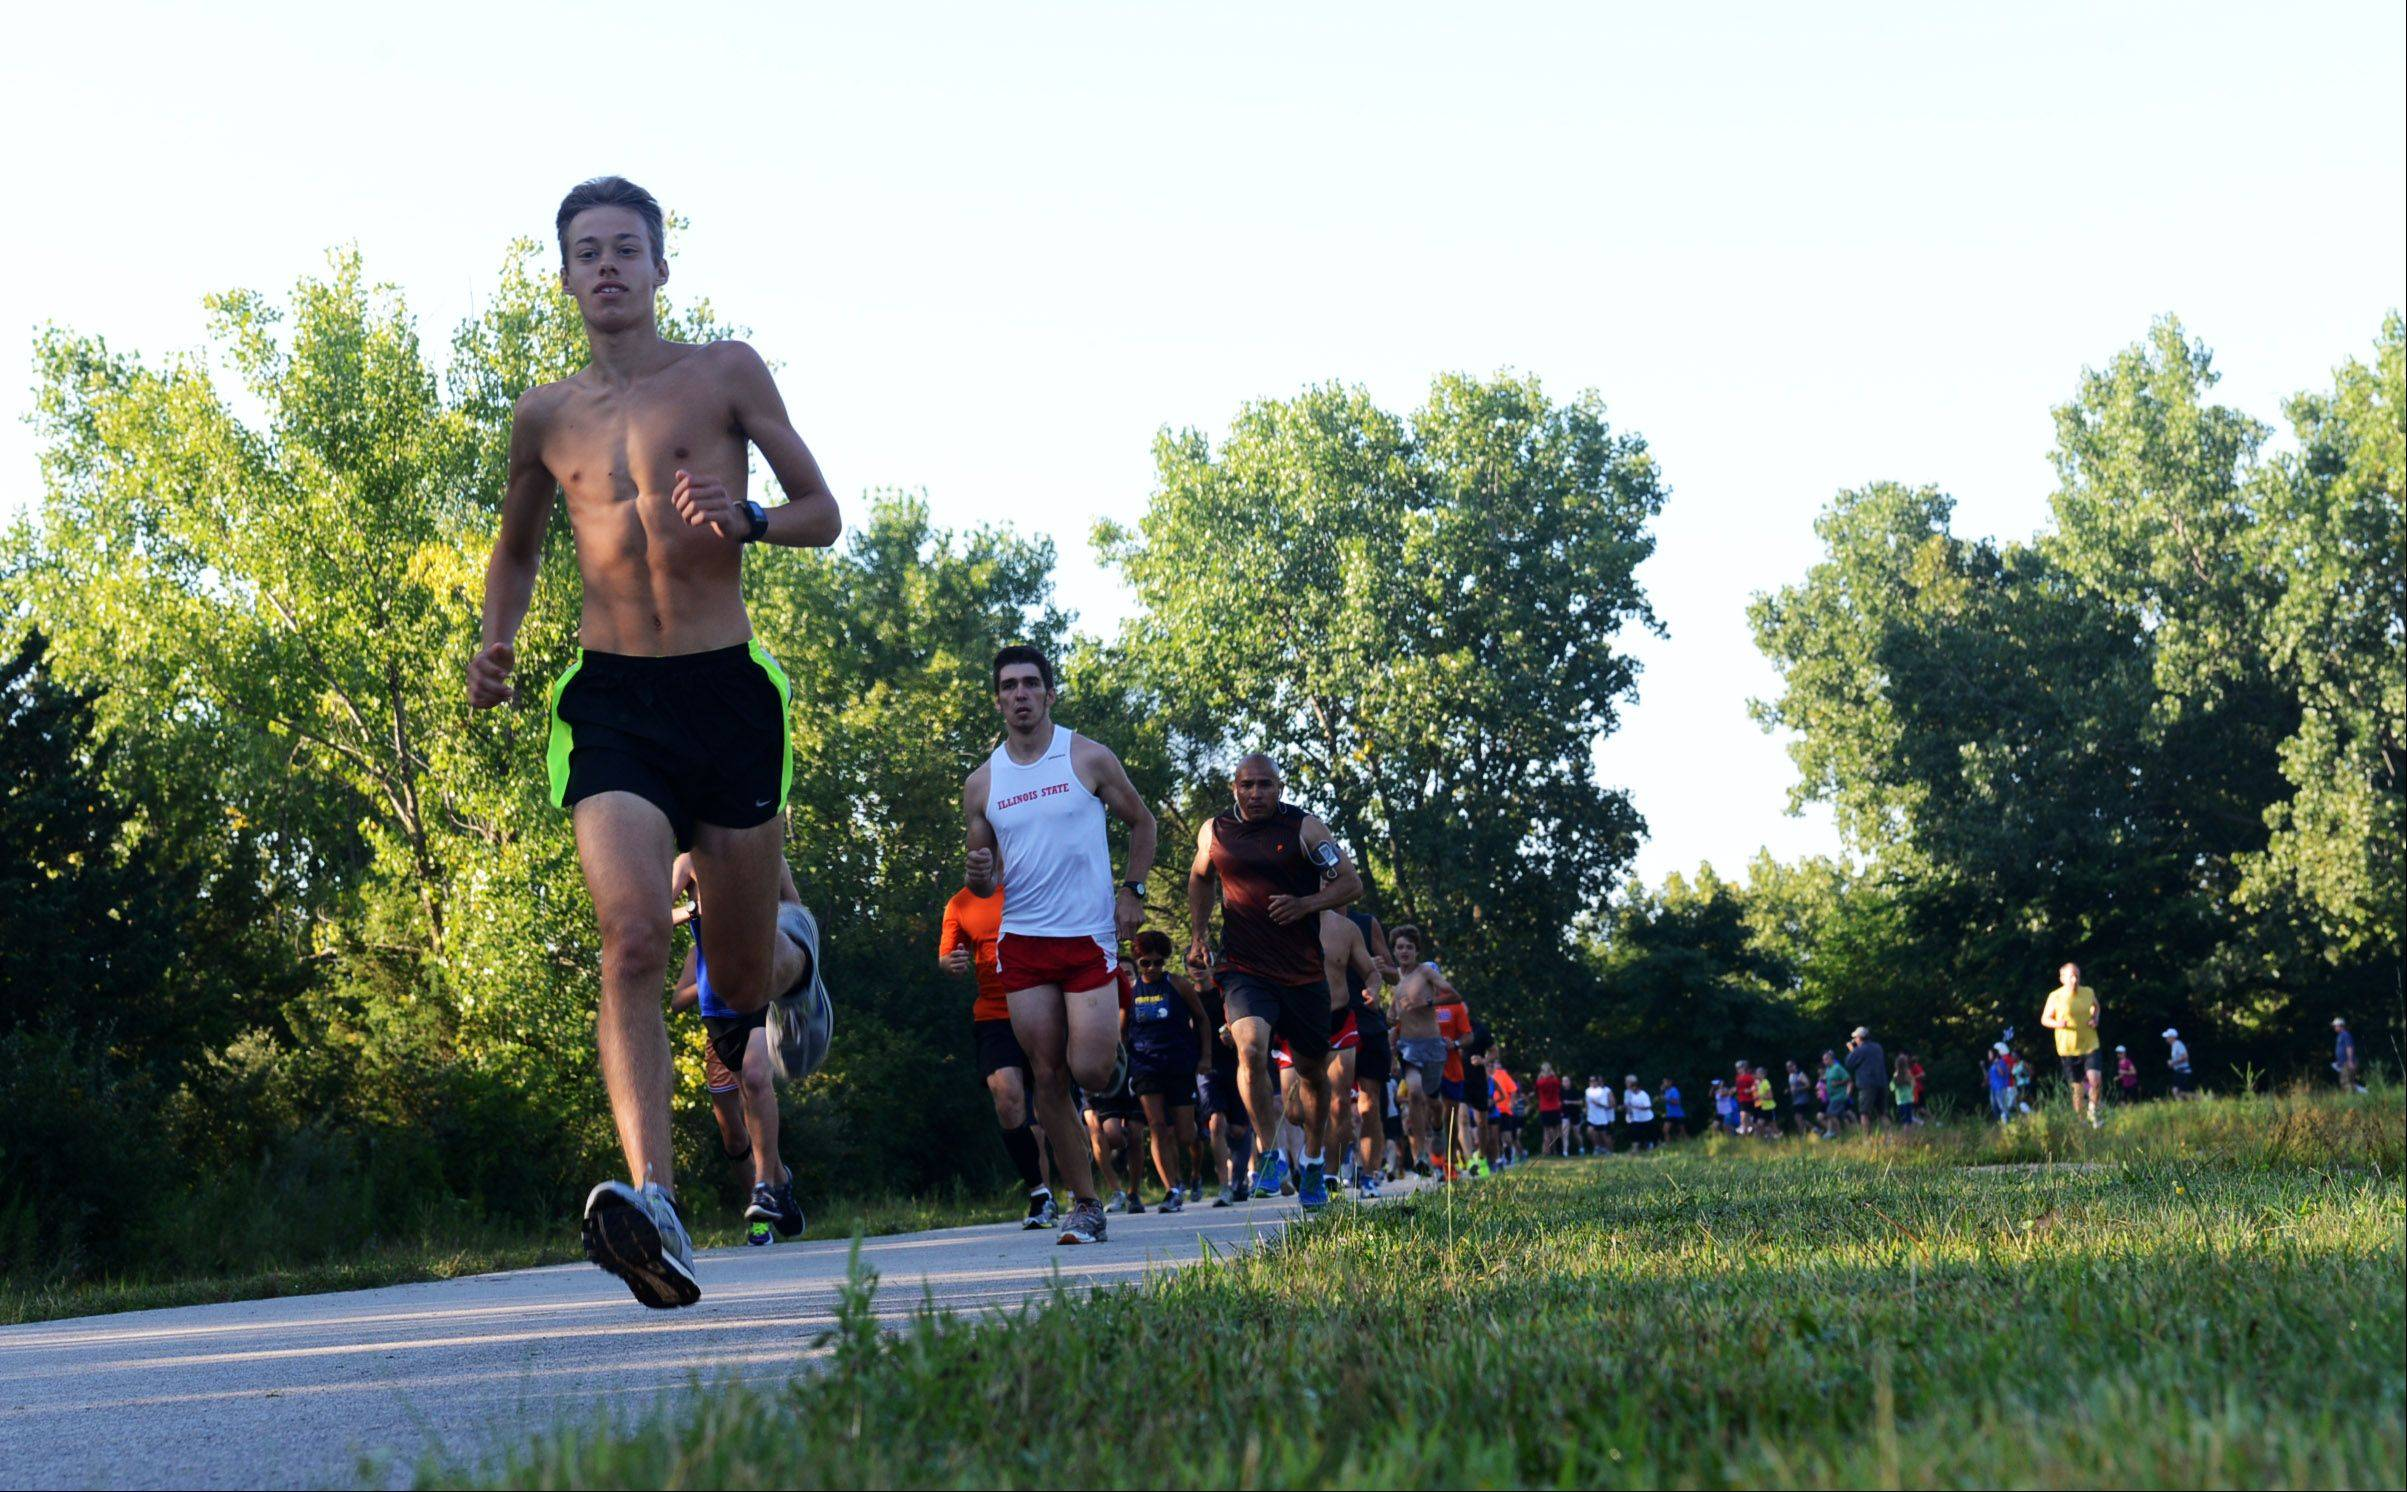 Corey Albrecht, 17, of Algonquin, leads the pack of runners at the Inaugural Raceway 5K Fun Run at Raceway woods in Carpentersville.